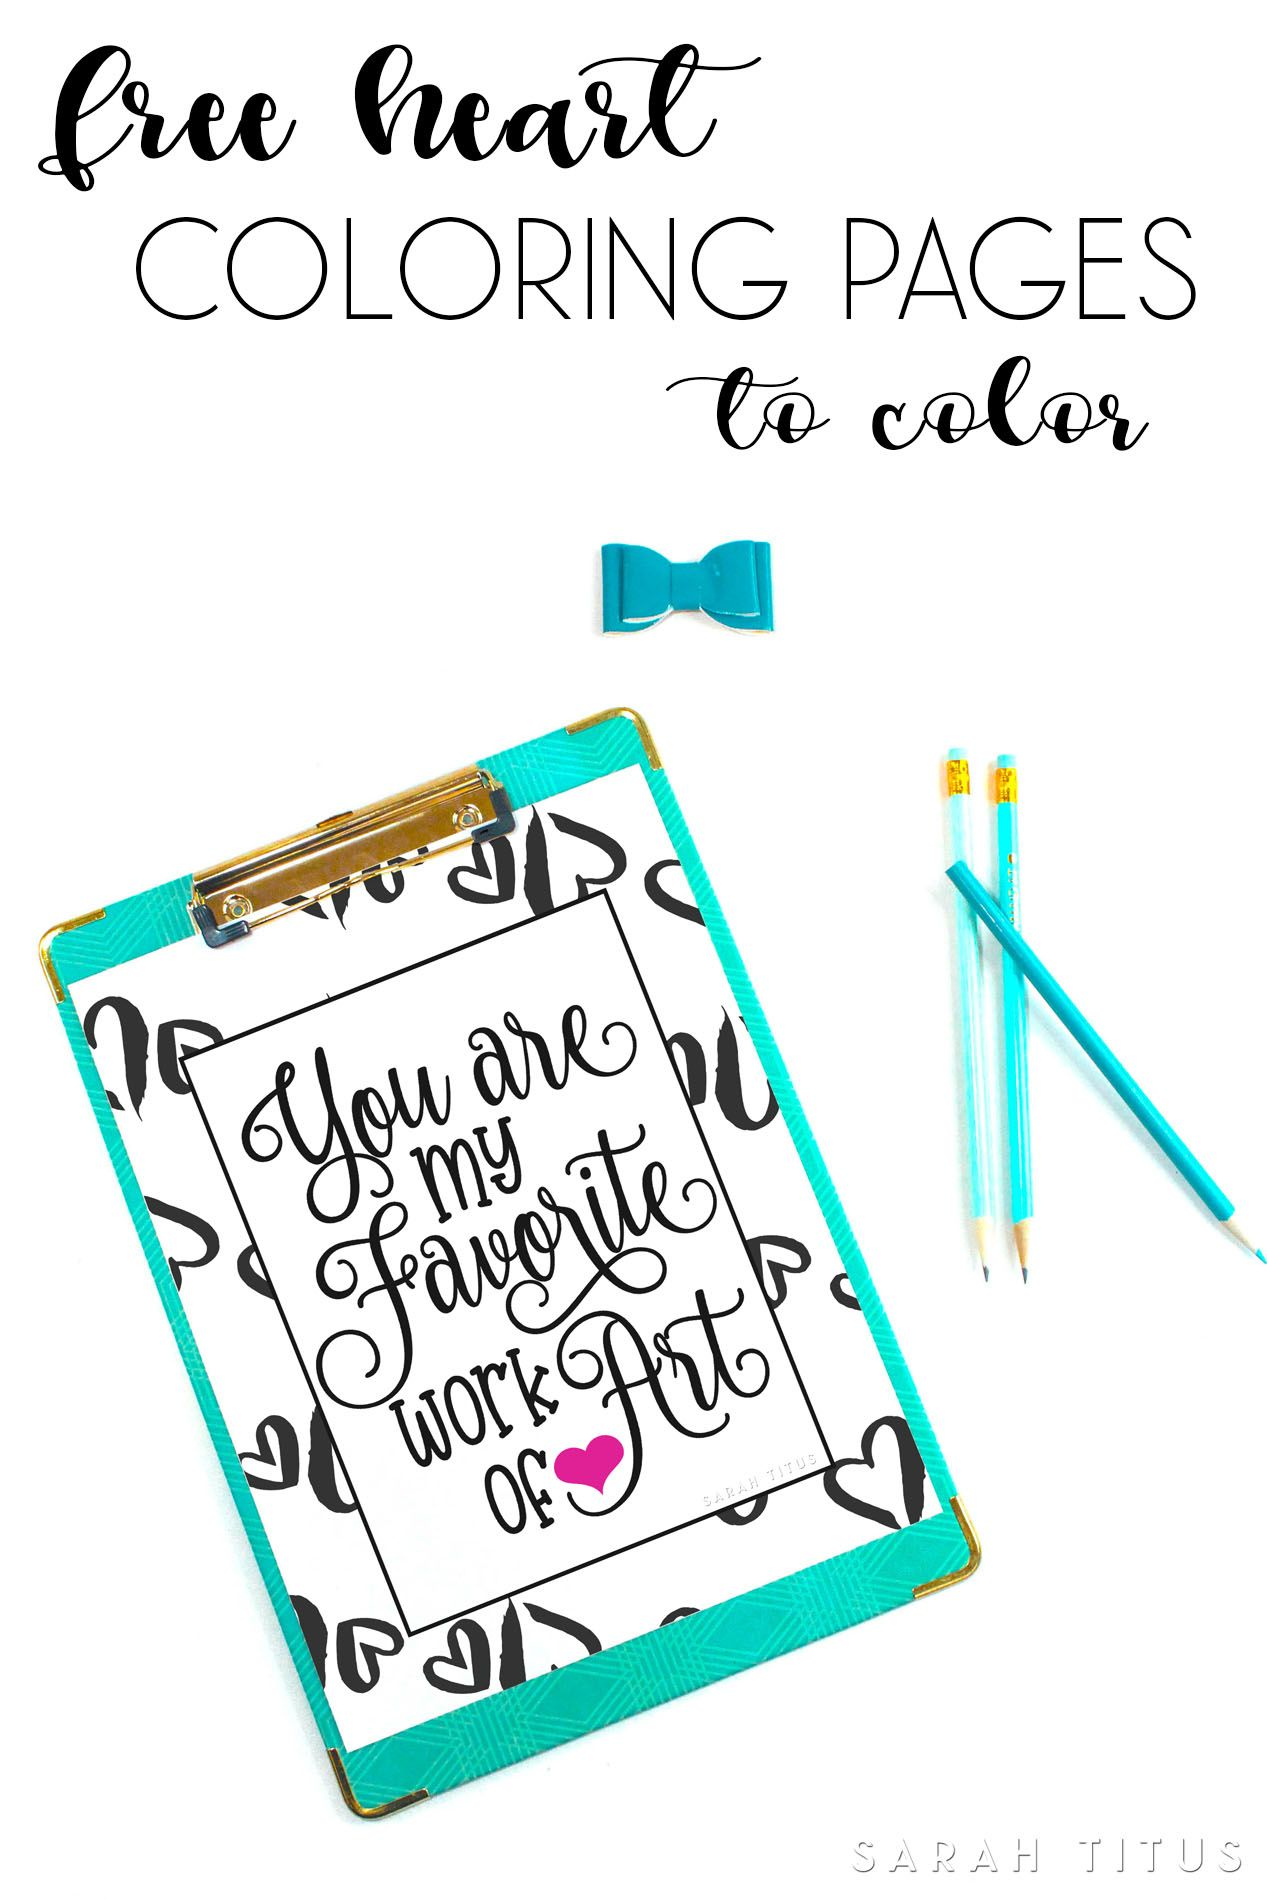 Free Heart Coloring Pages to Color | Frugal and Money Saving Group ...